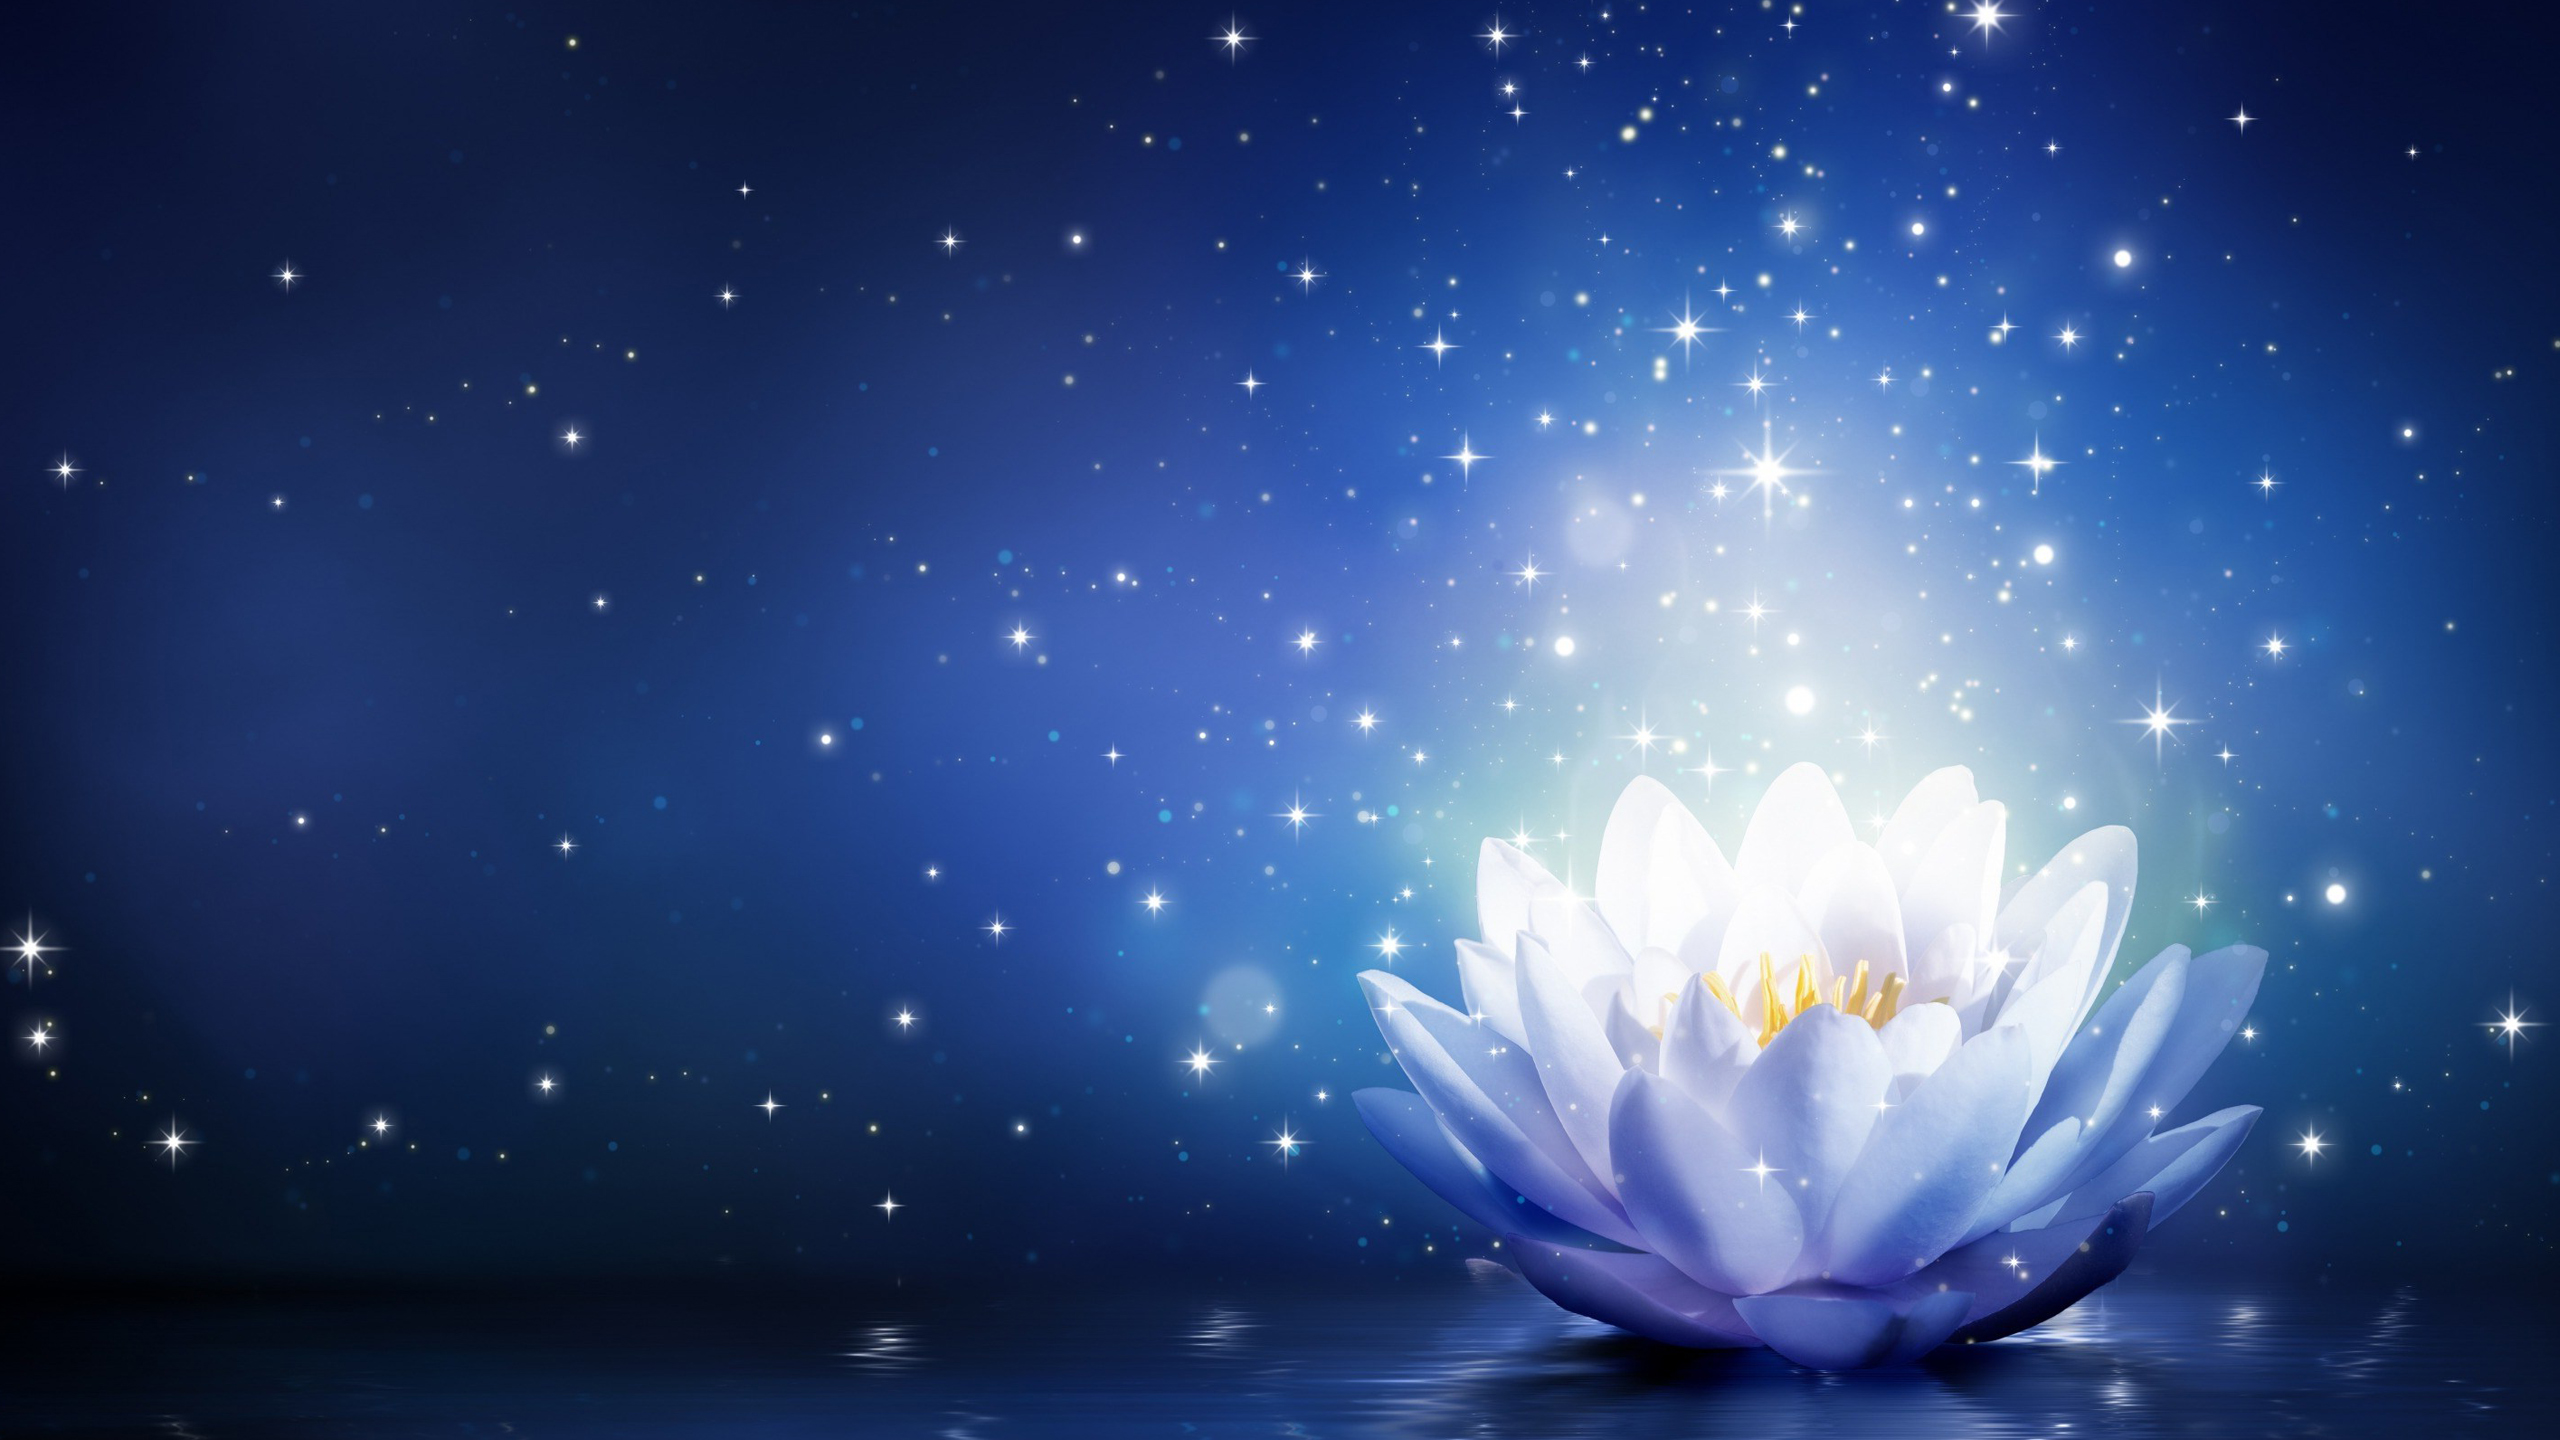 Animated white lotus flower with blue background hd wallpapers after publishing an animated picture of lotus flower for yoga symbol here is another lotus flower which designed in blue background mightylinksfo